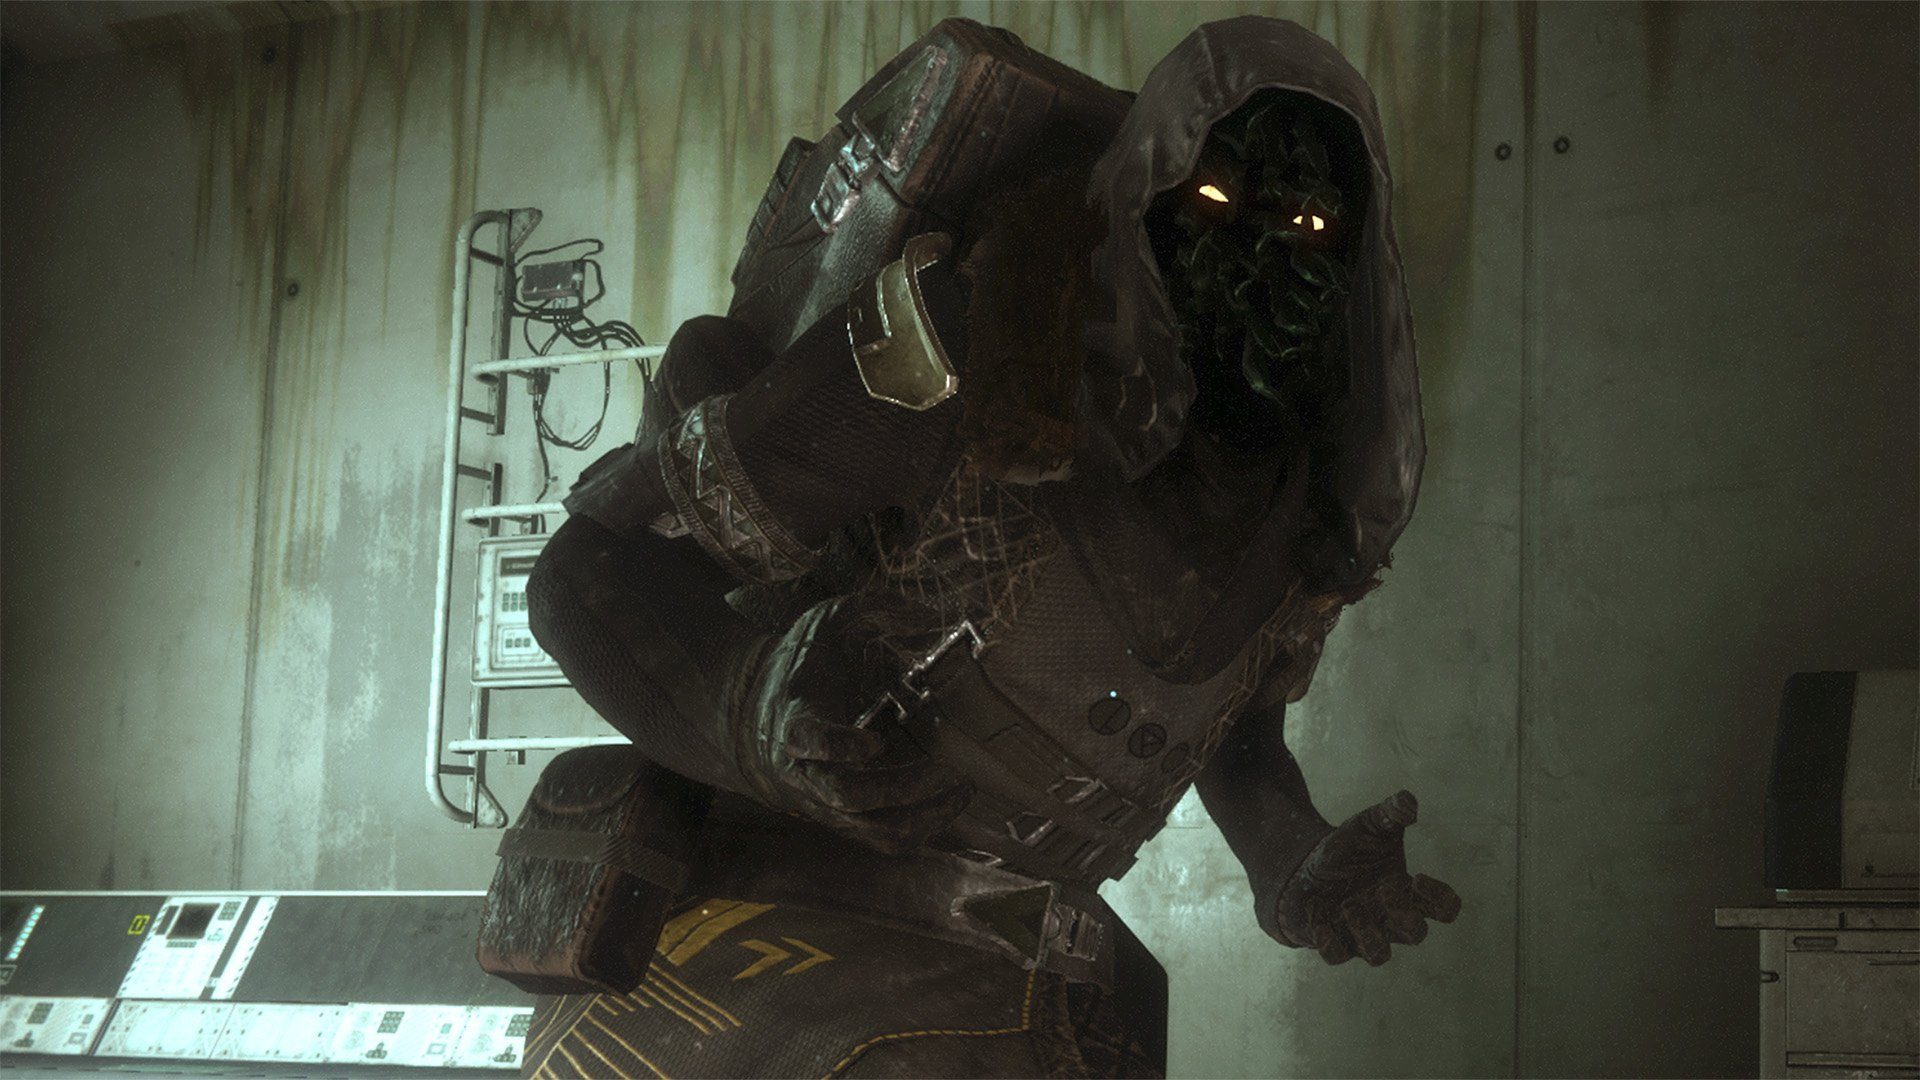 What Xur is selling in Destiny 2 - June 19, 2020